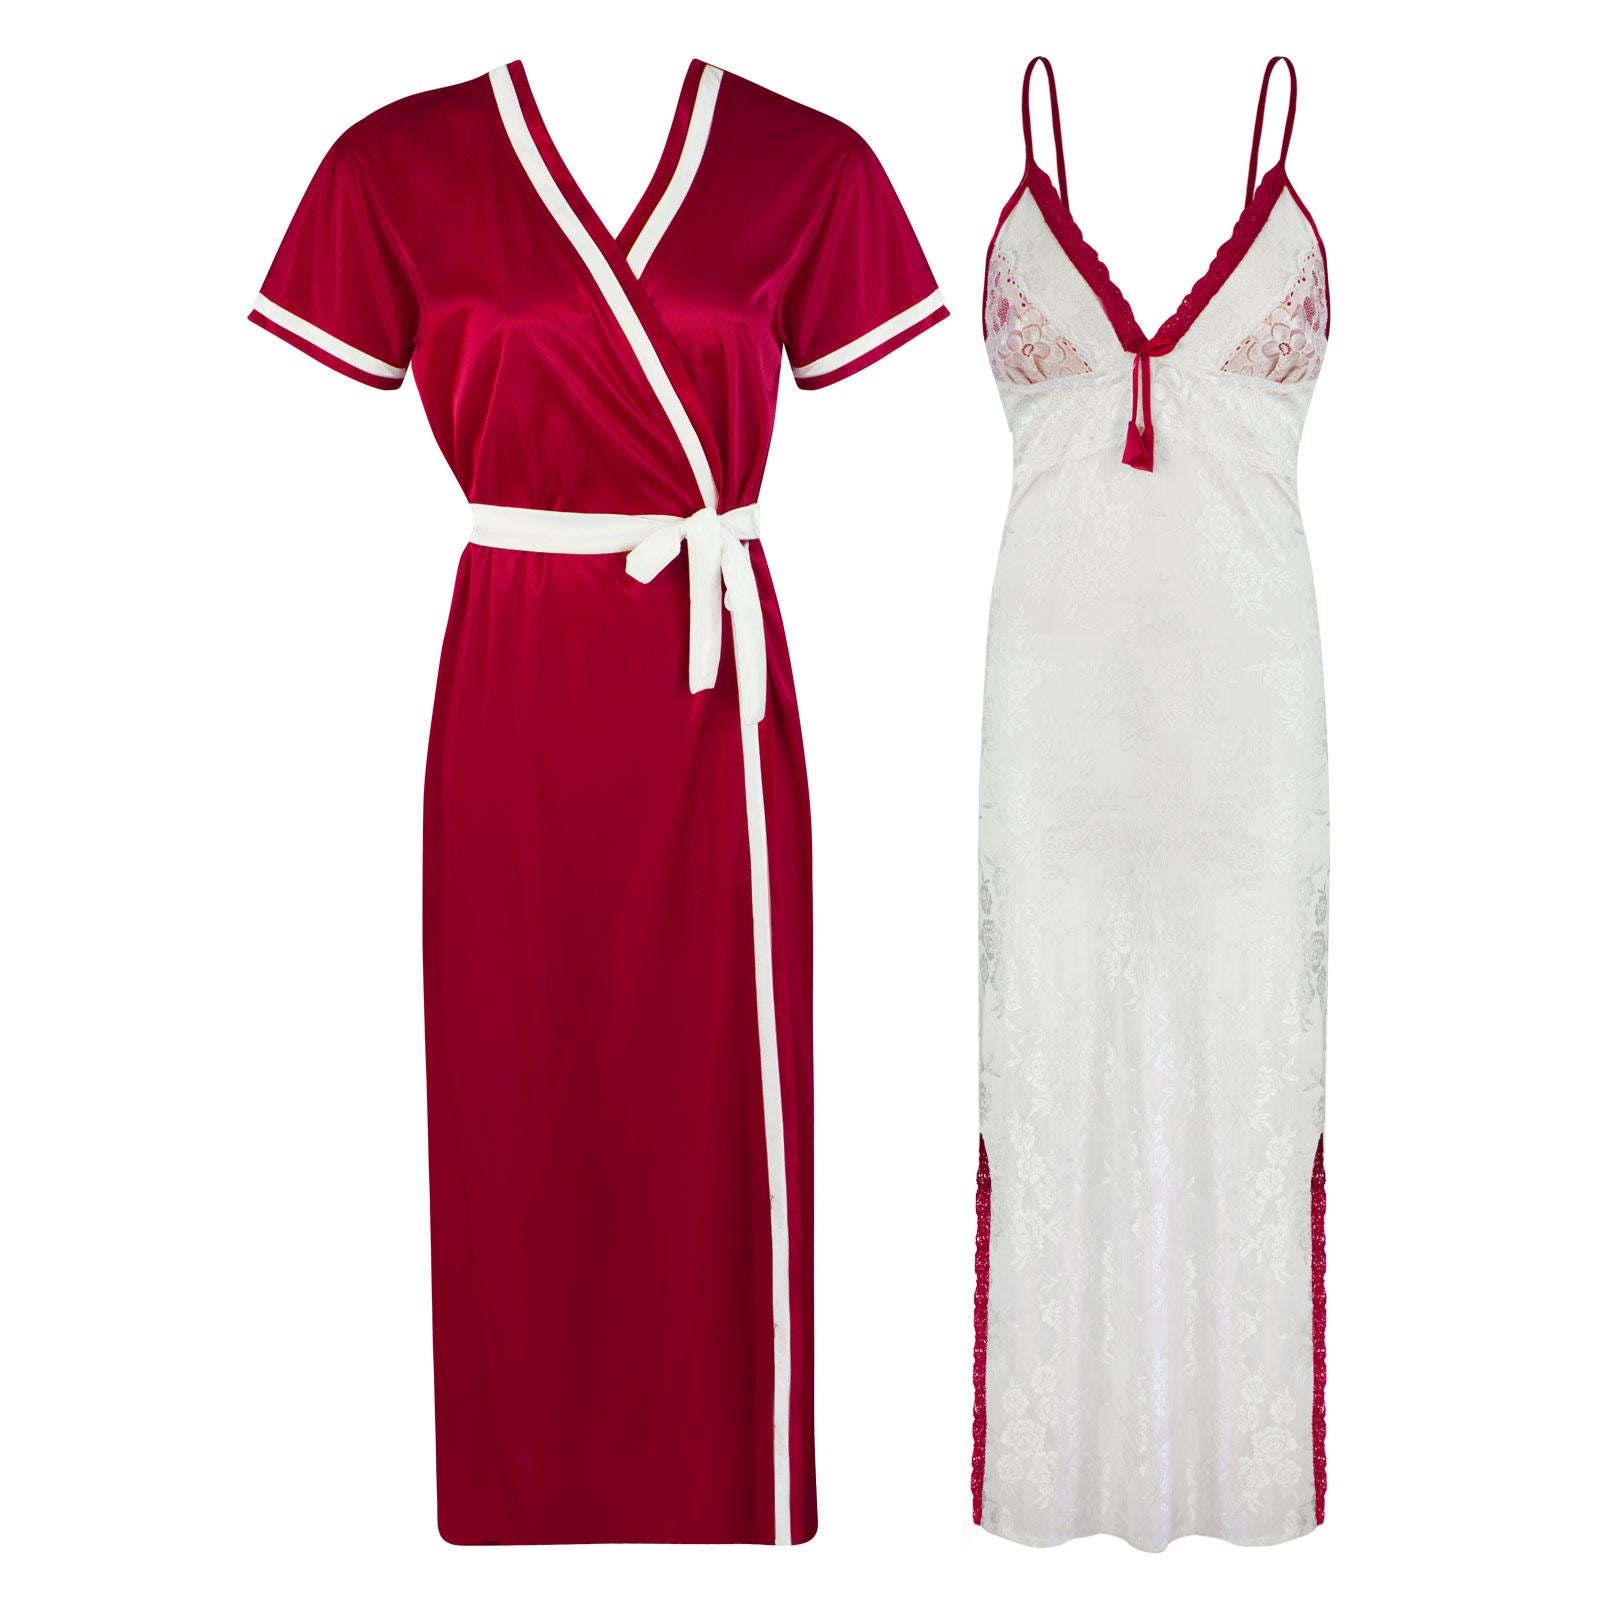 Sexy Lace Satin White Nightdress With Robe [colour]- Hautie UK, #Nightfashion | #Underfashion ONE, FREE SIZE S M L XL  RED